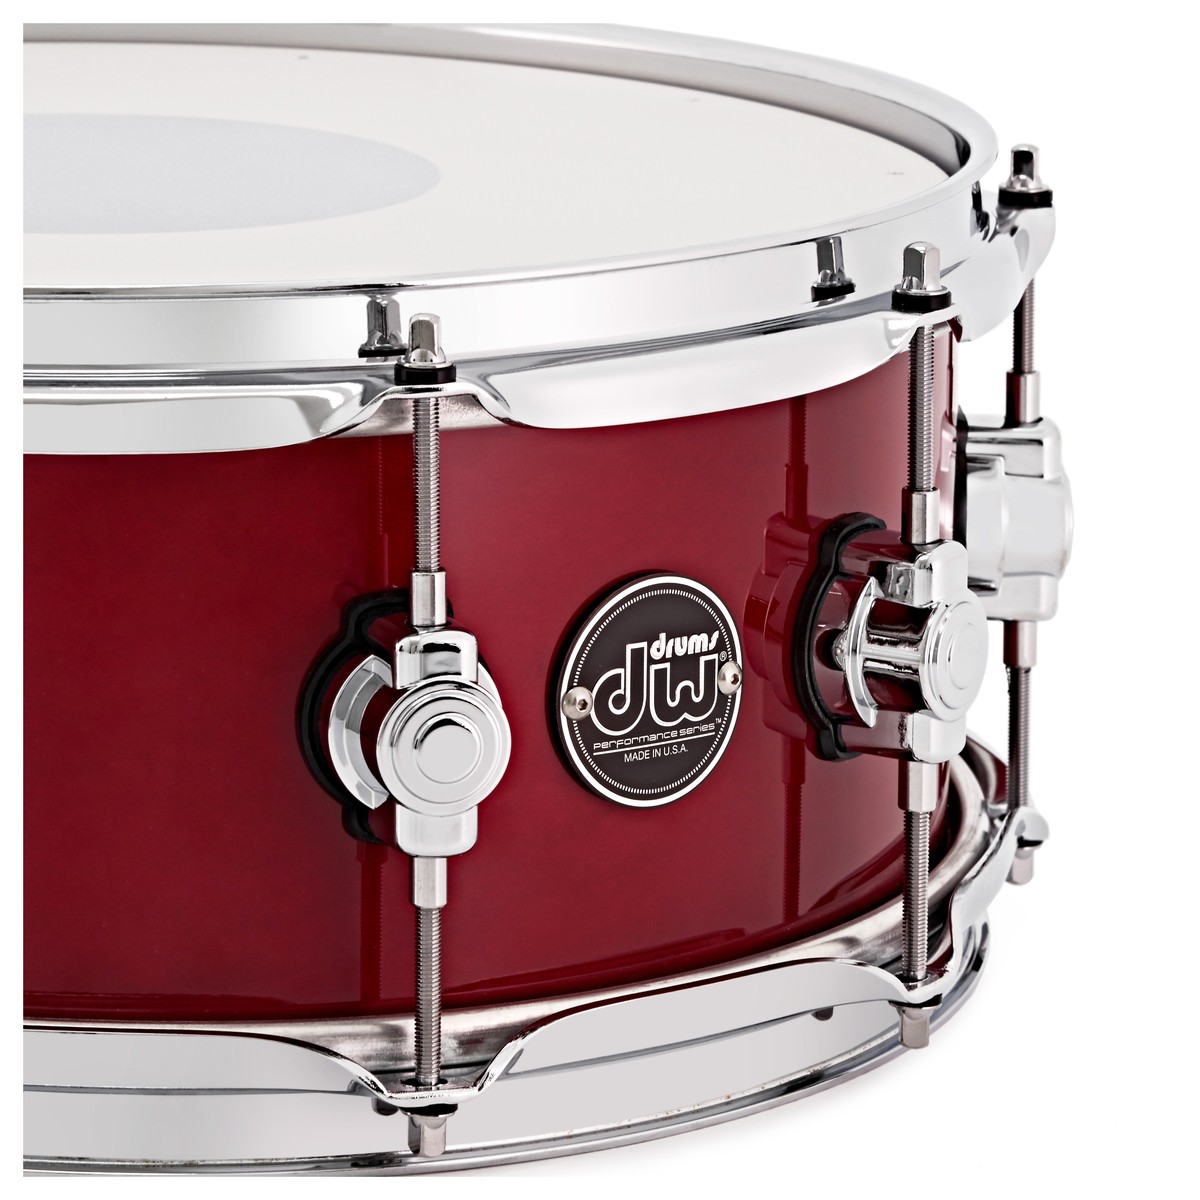 dw drums performance series 14 x 5 5 snare drum candy apple red at gear4music. Black Bedroom Furniture Sets. Home Design Ideas